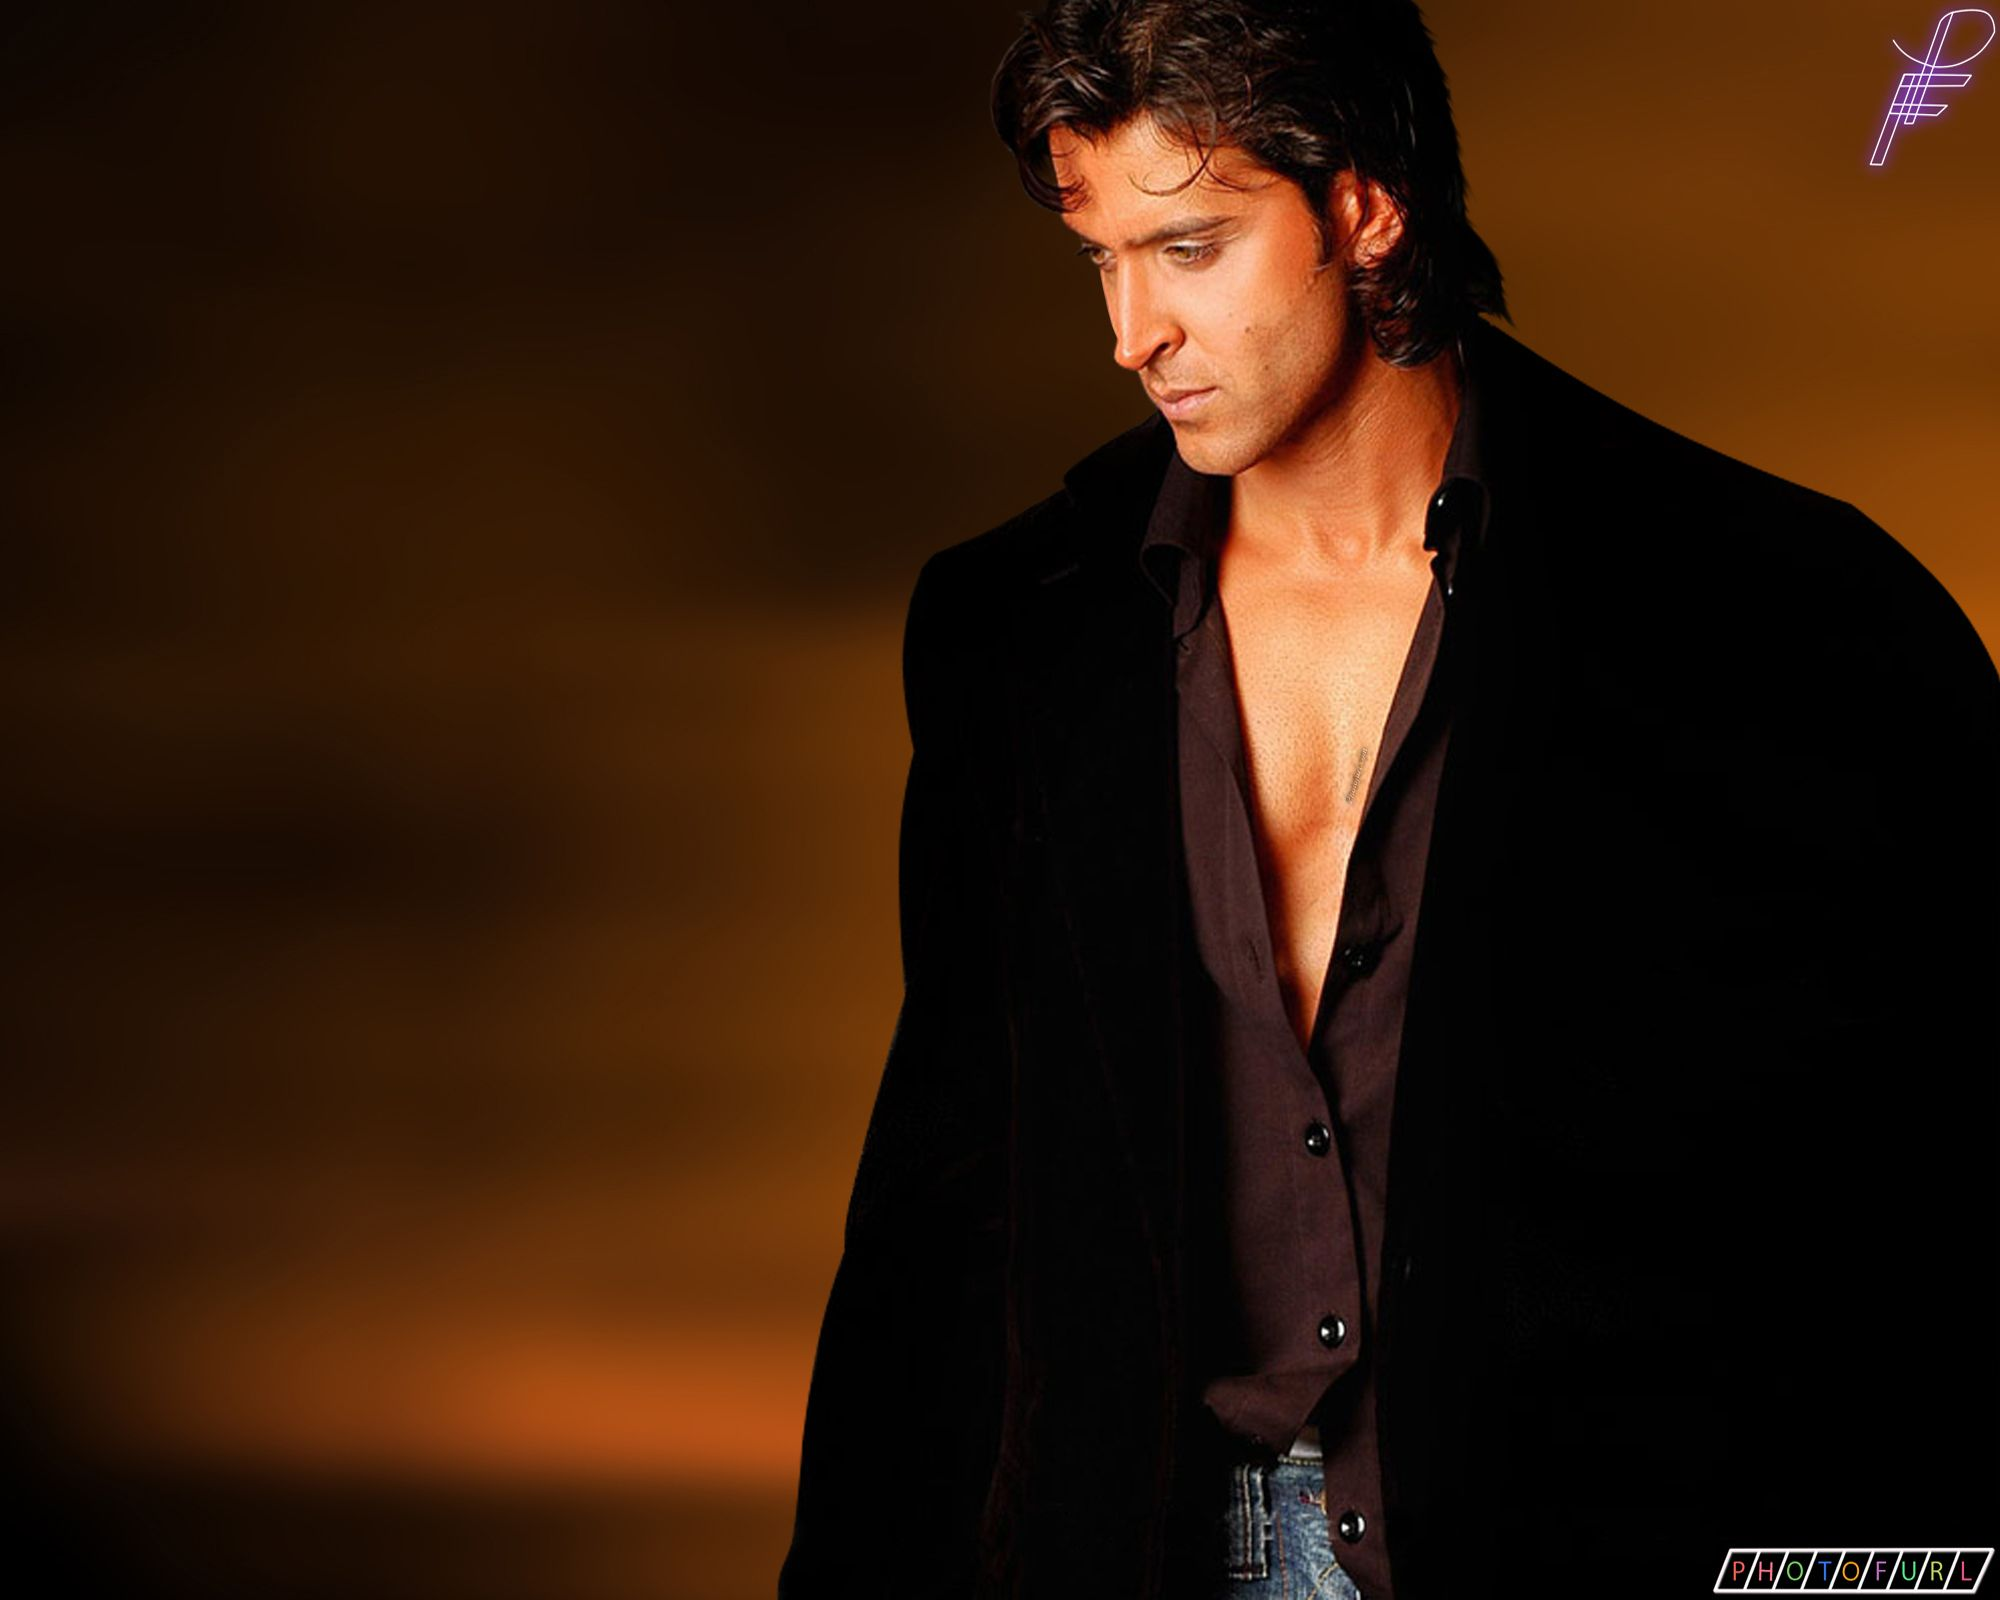 2000x1600 Bollywood Heroes Wallpapers 2012 New HD Backgrounds For Desktop ...